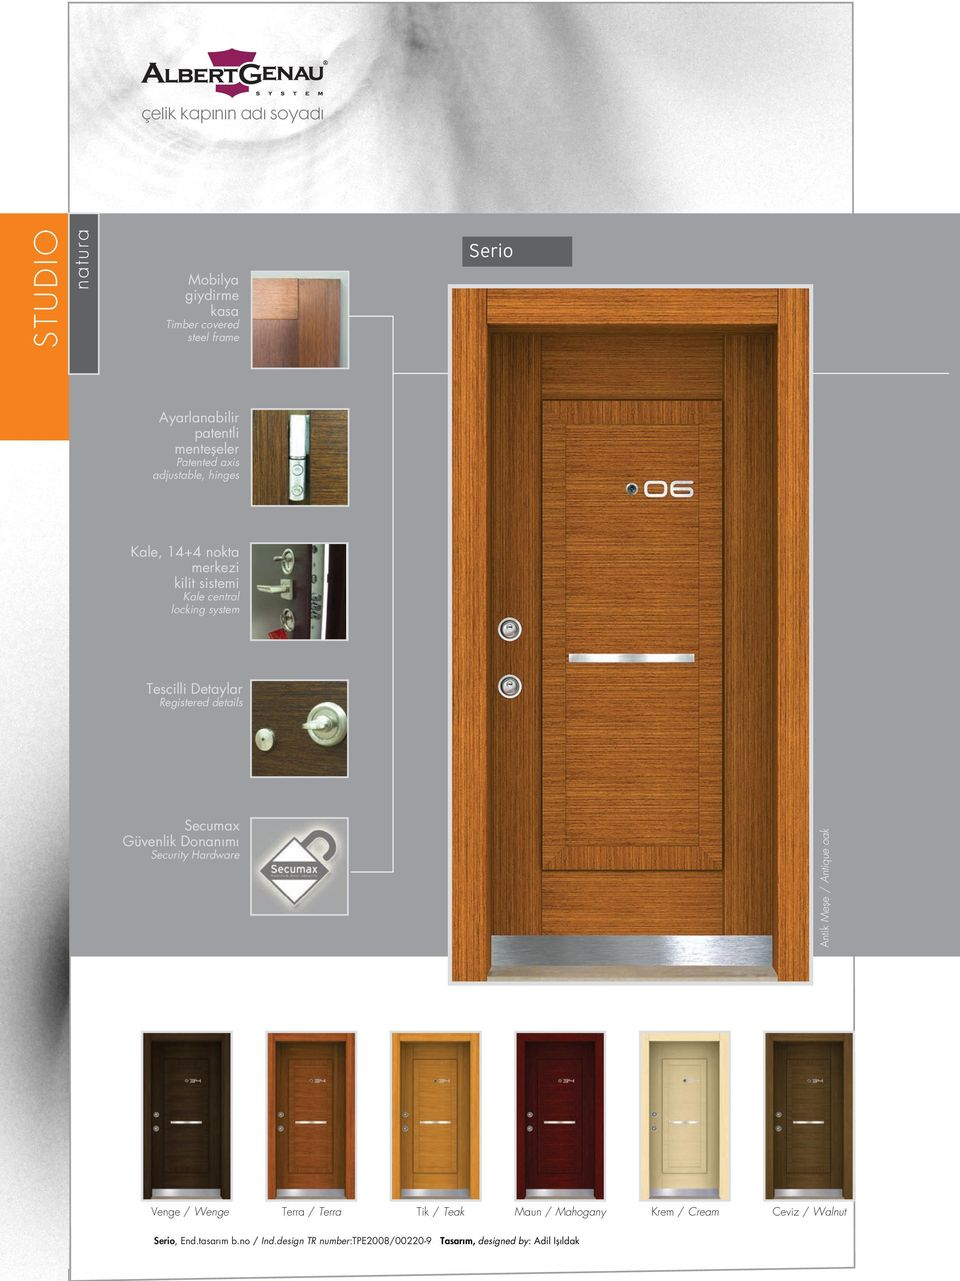 Tescilli Detaylar Registered details Secumax Güvenlik Donan m Security Hardware Antik Mefle / Antique oak Venge /